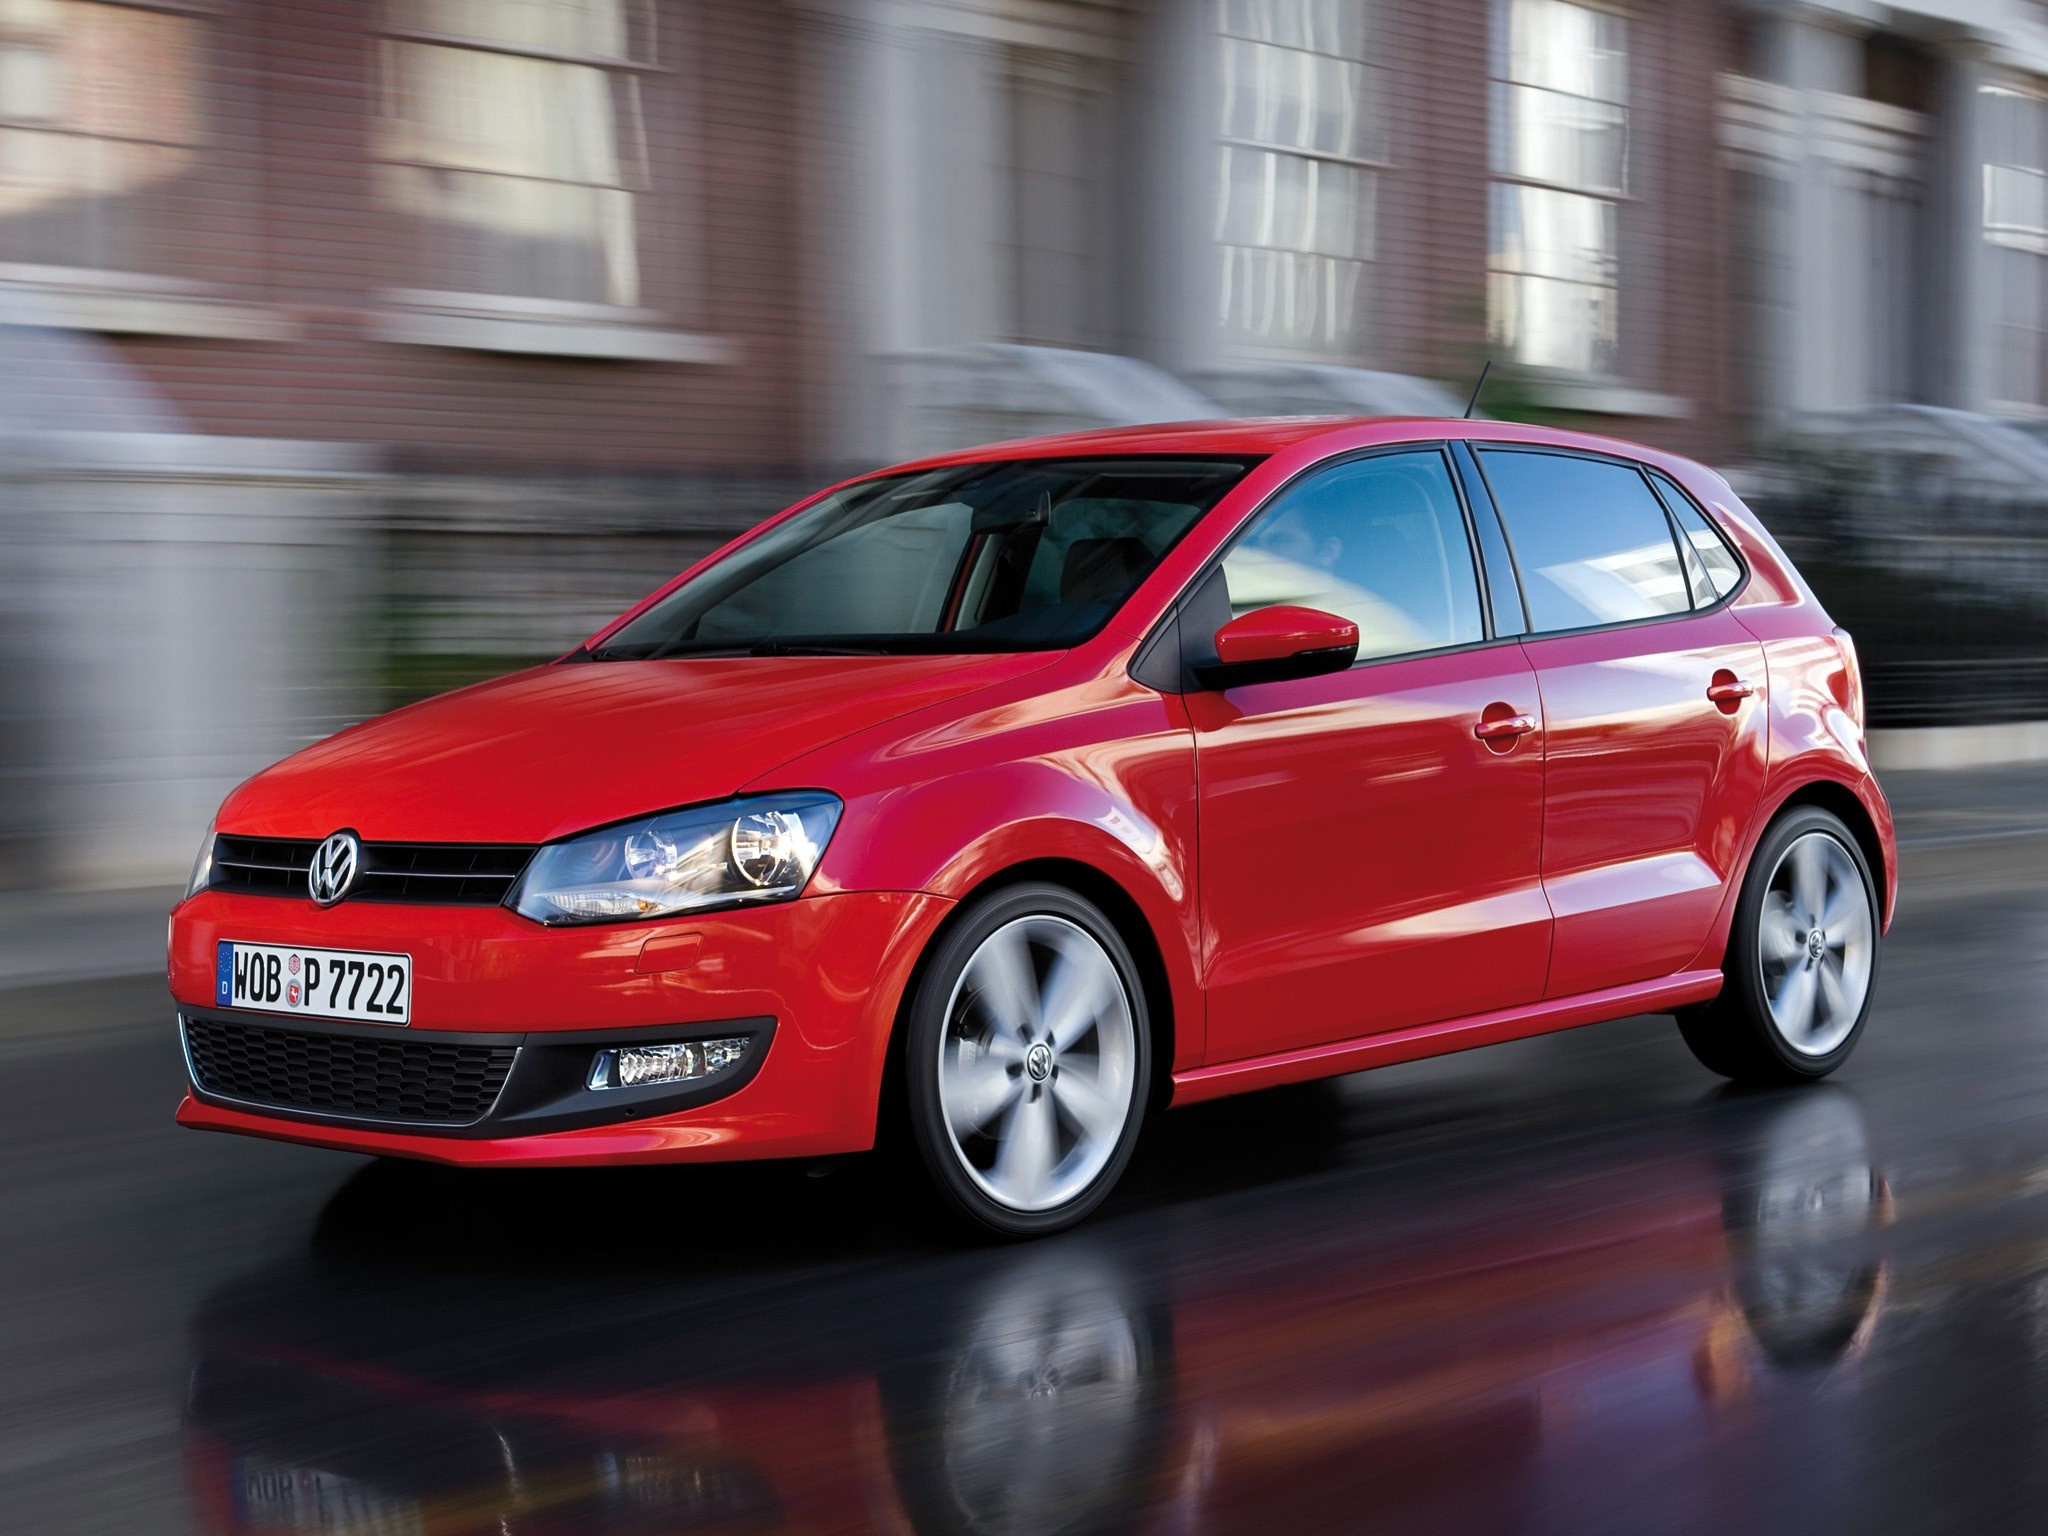 Volkswagen Polo Background image